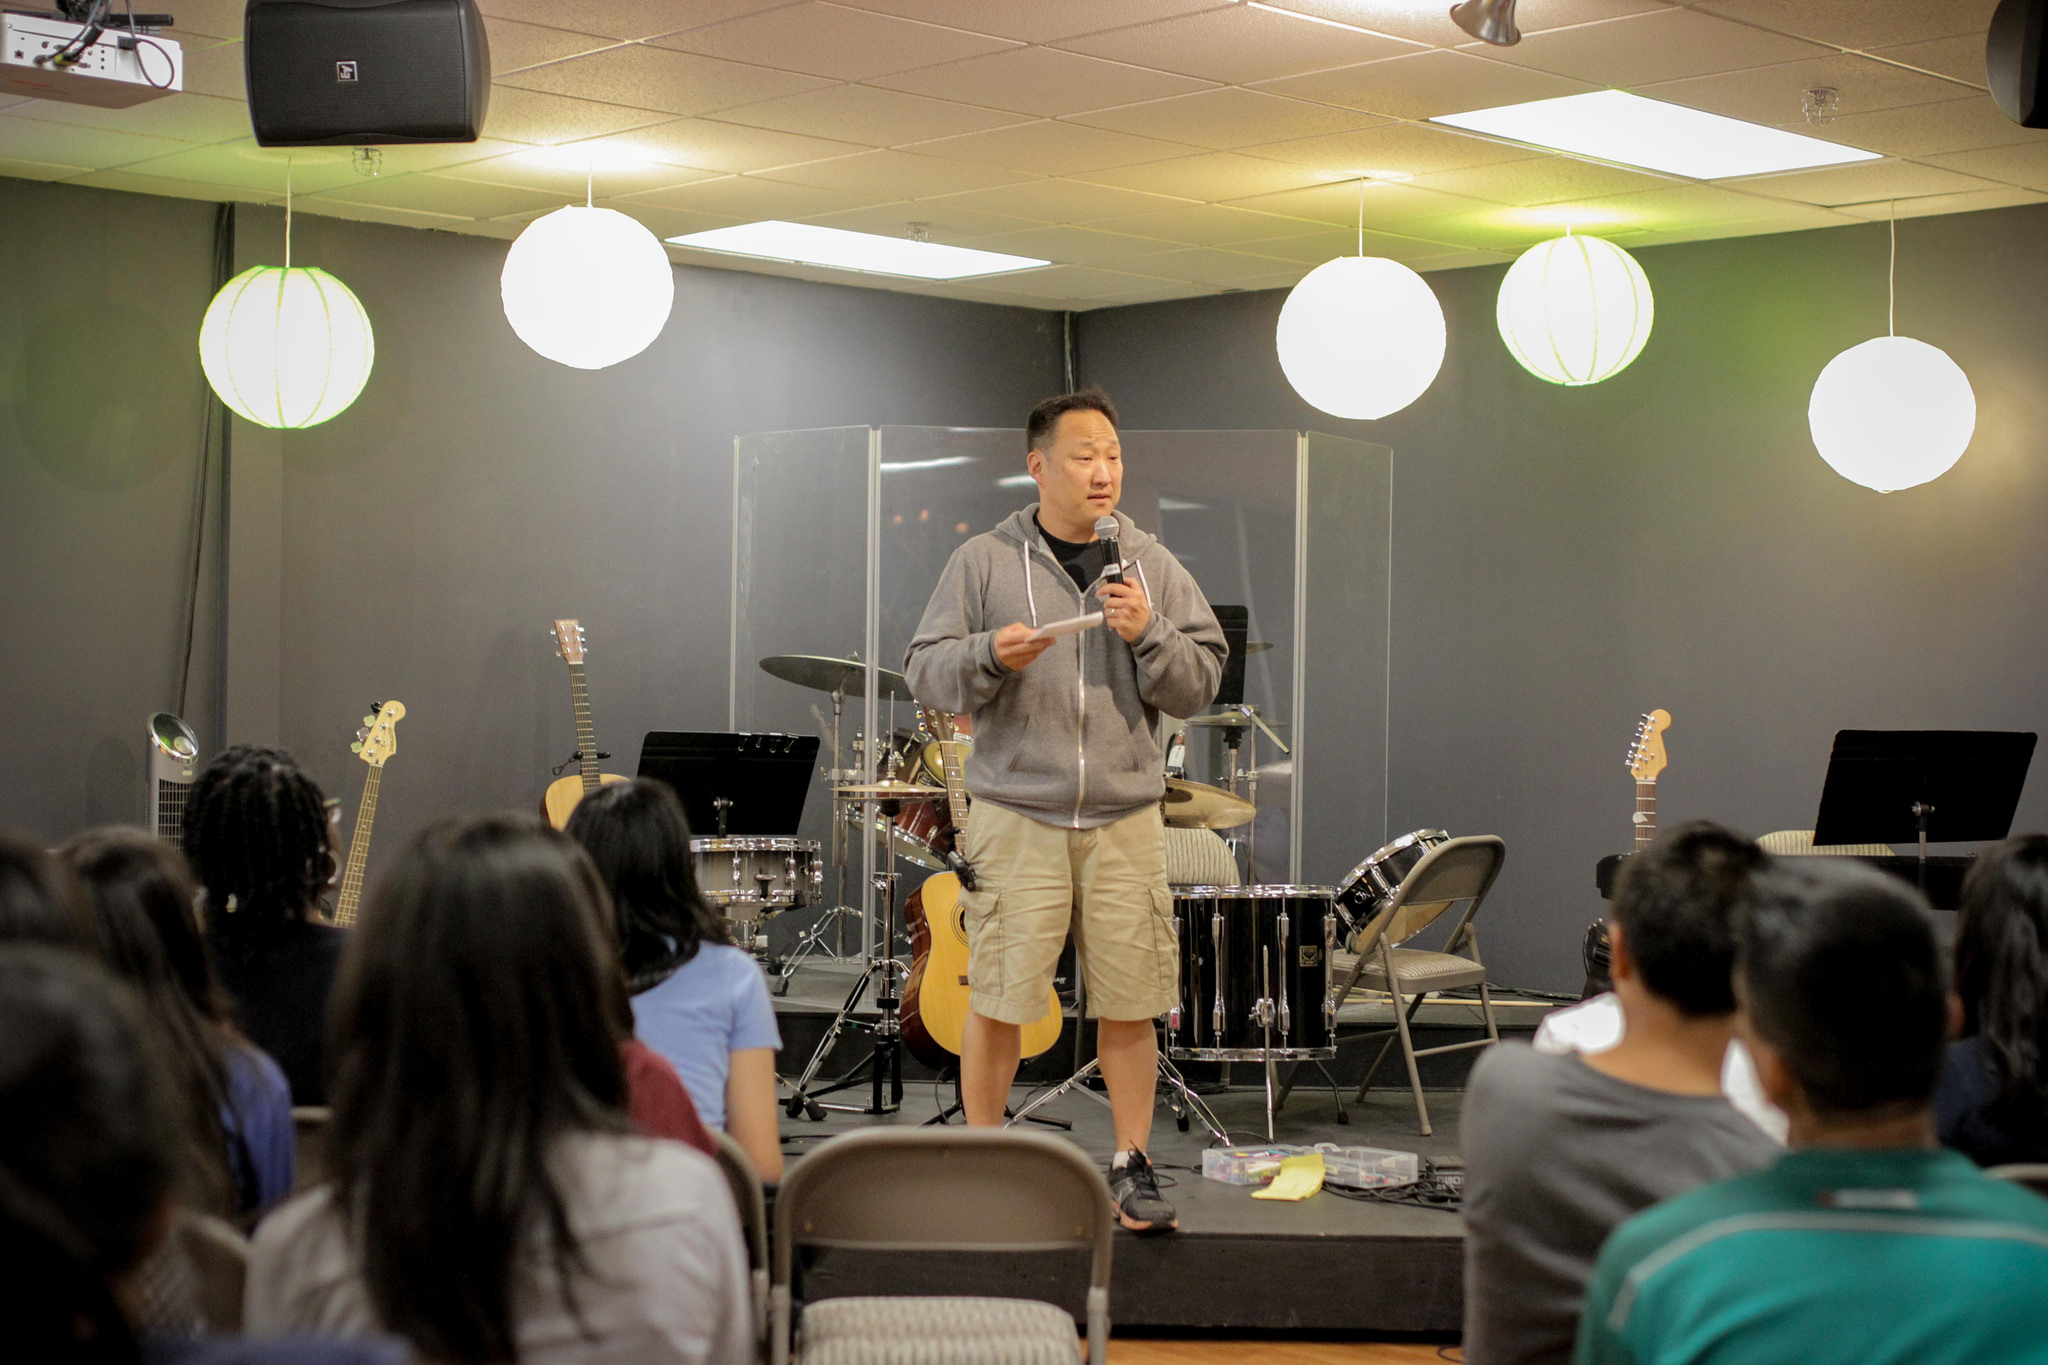 Afterwards, Teacher Steve gave us a rousing talk on making the most of our summer through serving the people in our lives and learning more about God. Let's all spur each other on to finish the Summer Challenge!